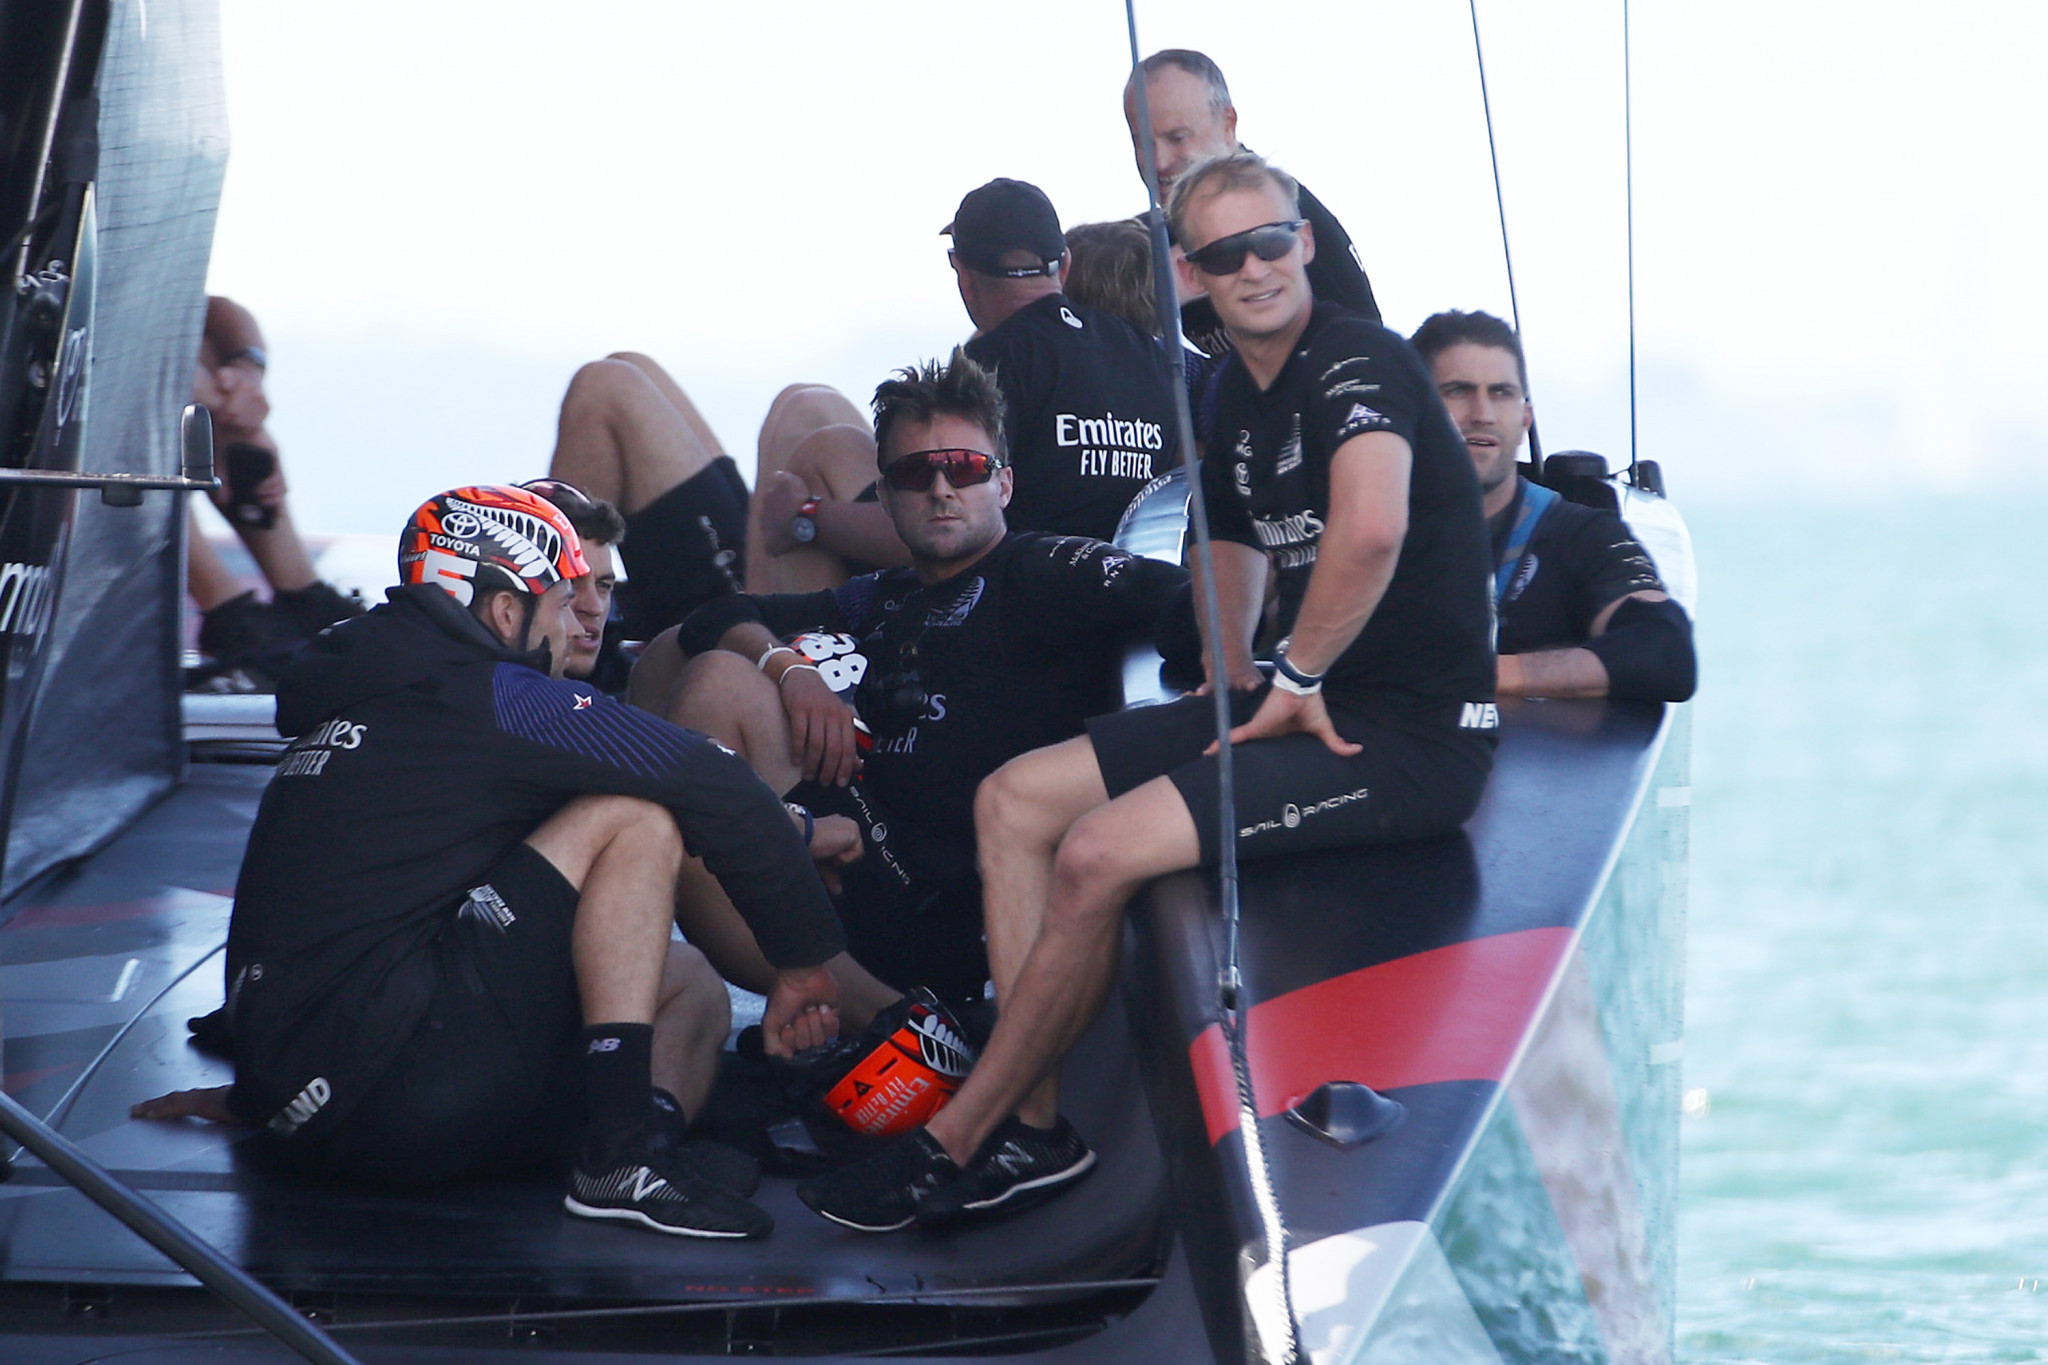 Fourth day of America's Cup postponed due to lack of wind